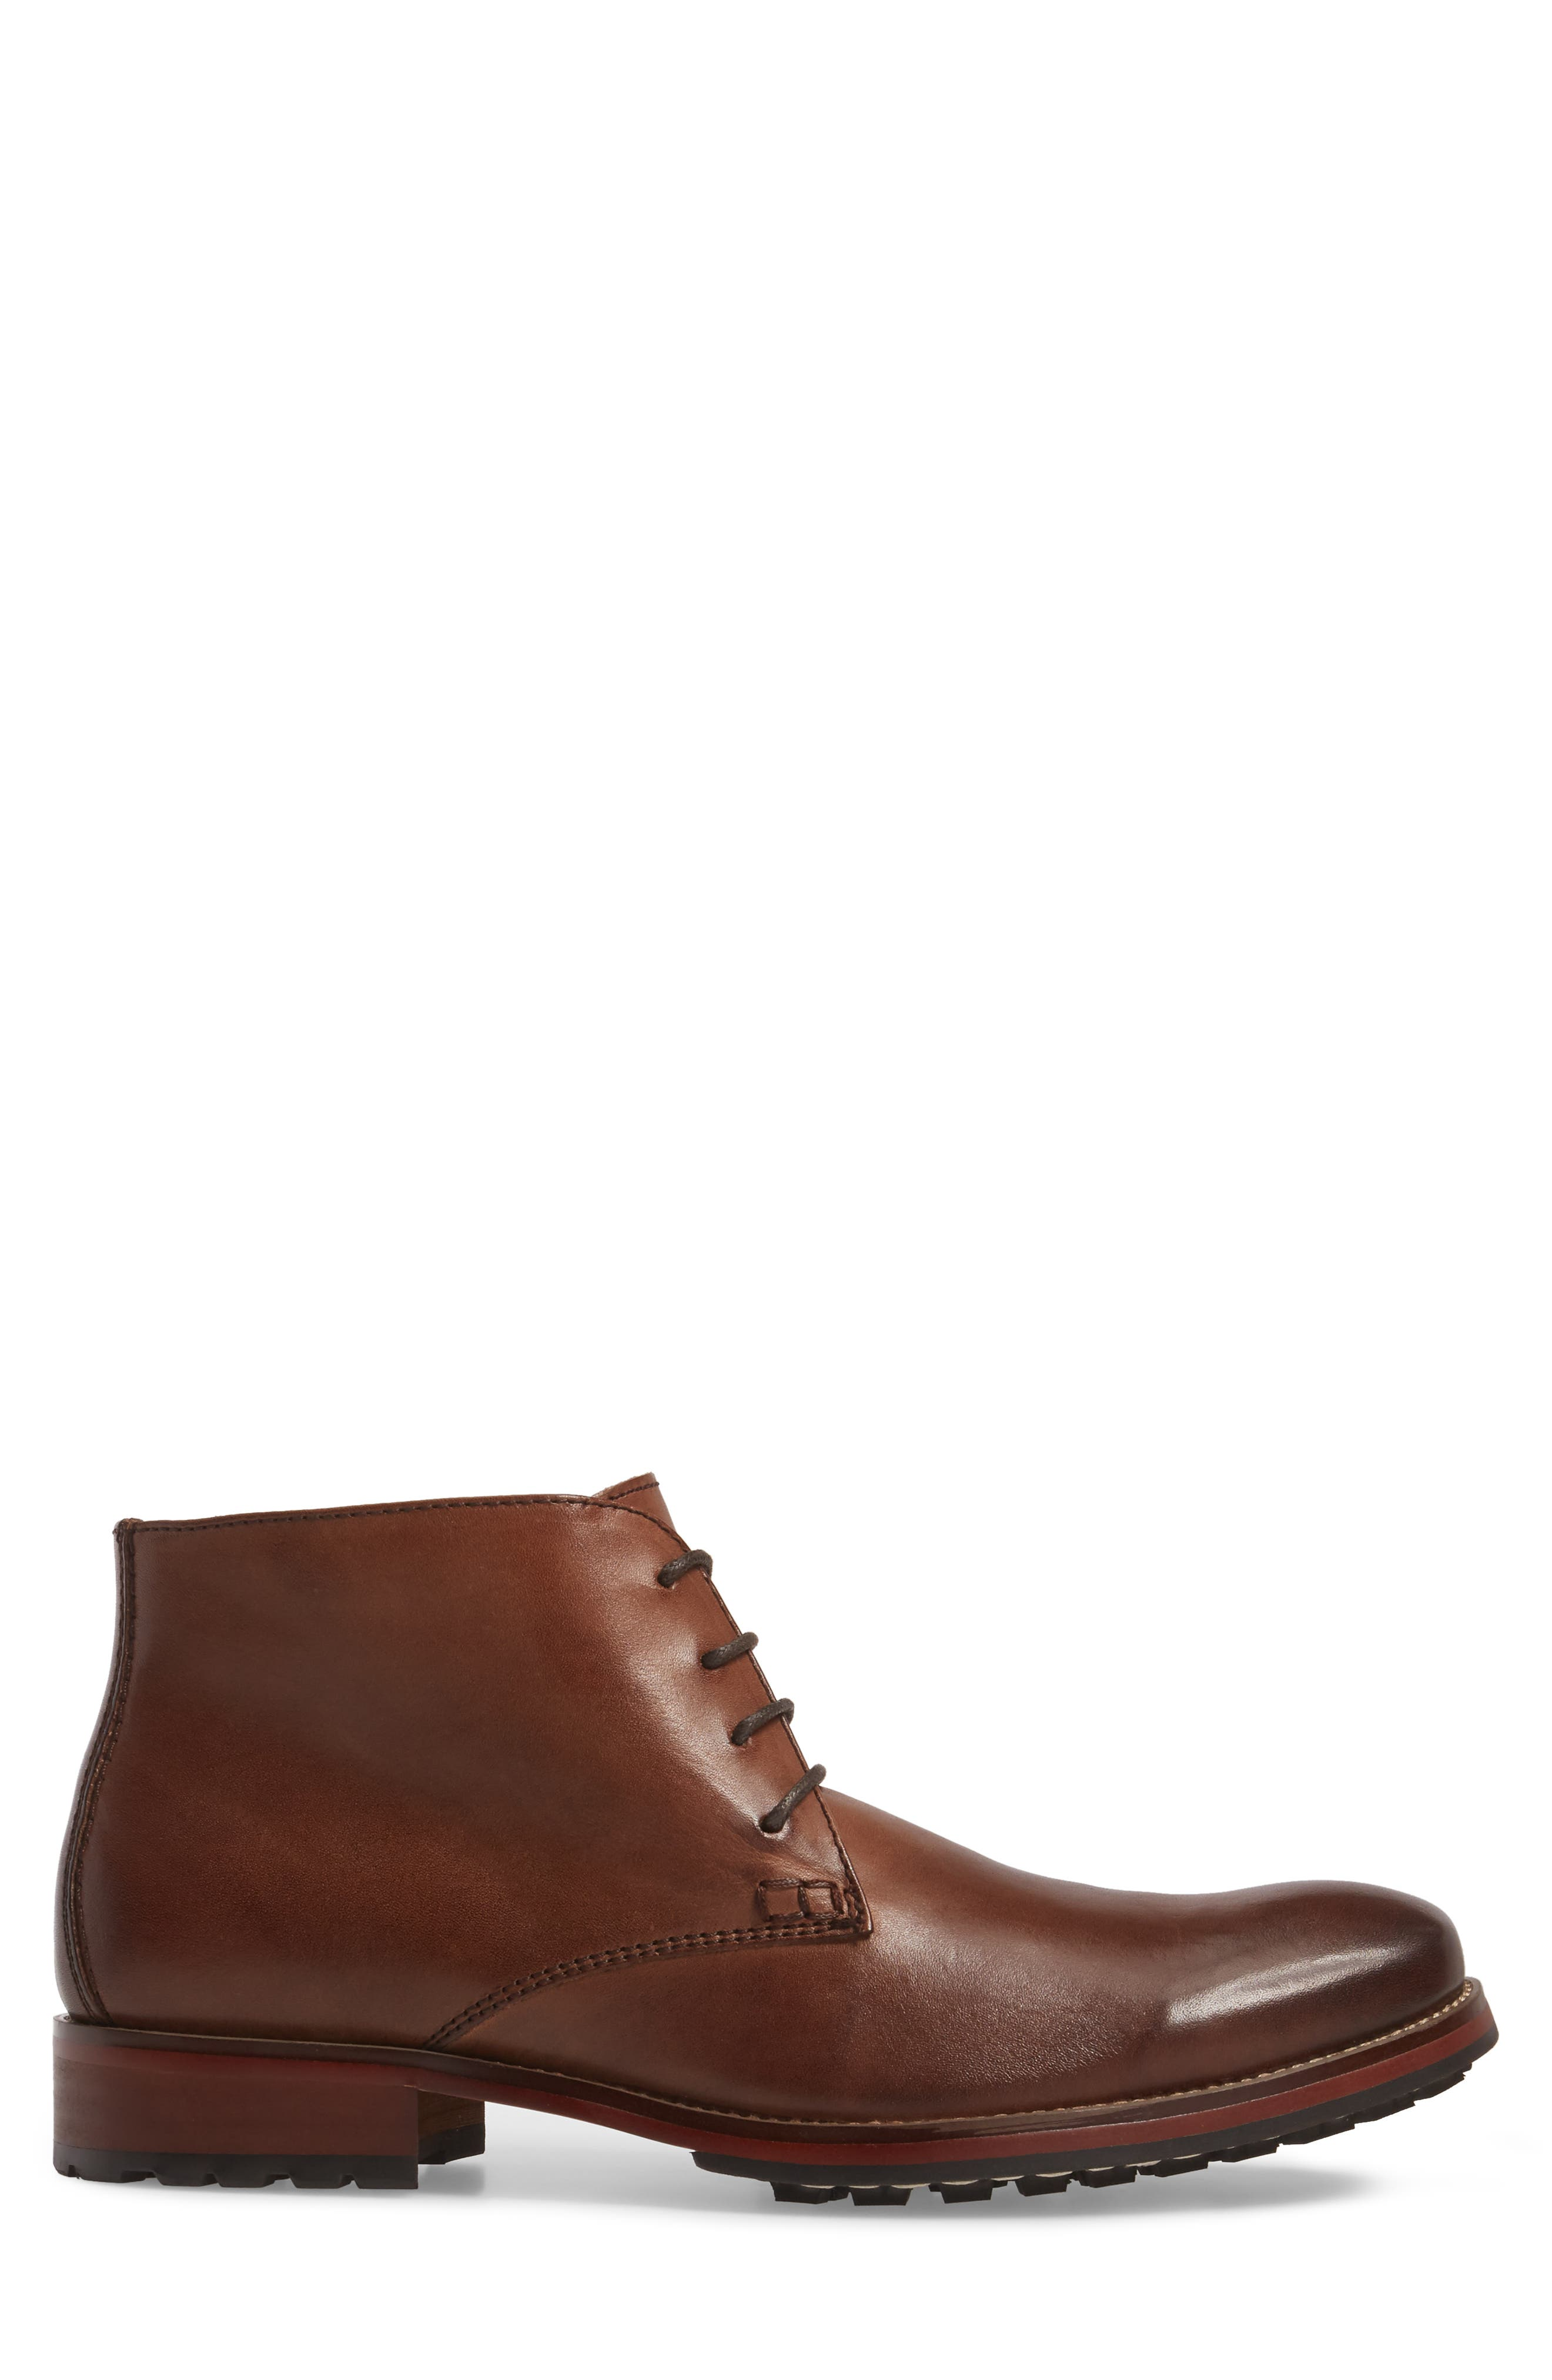 Kennison Chukka Boot,                             Alternate thumbnail 3, color,                             Brown